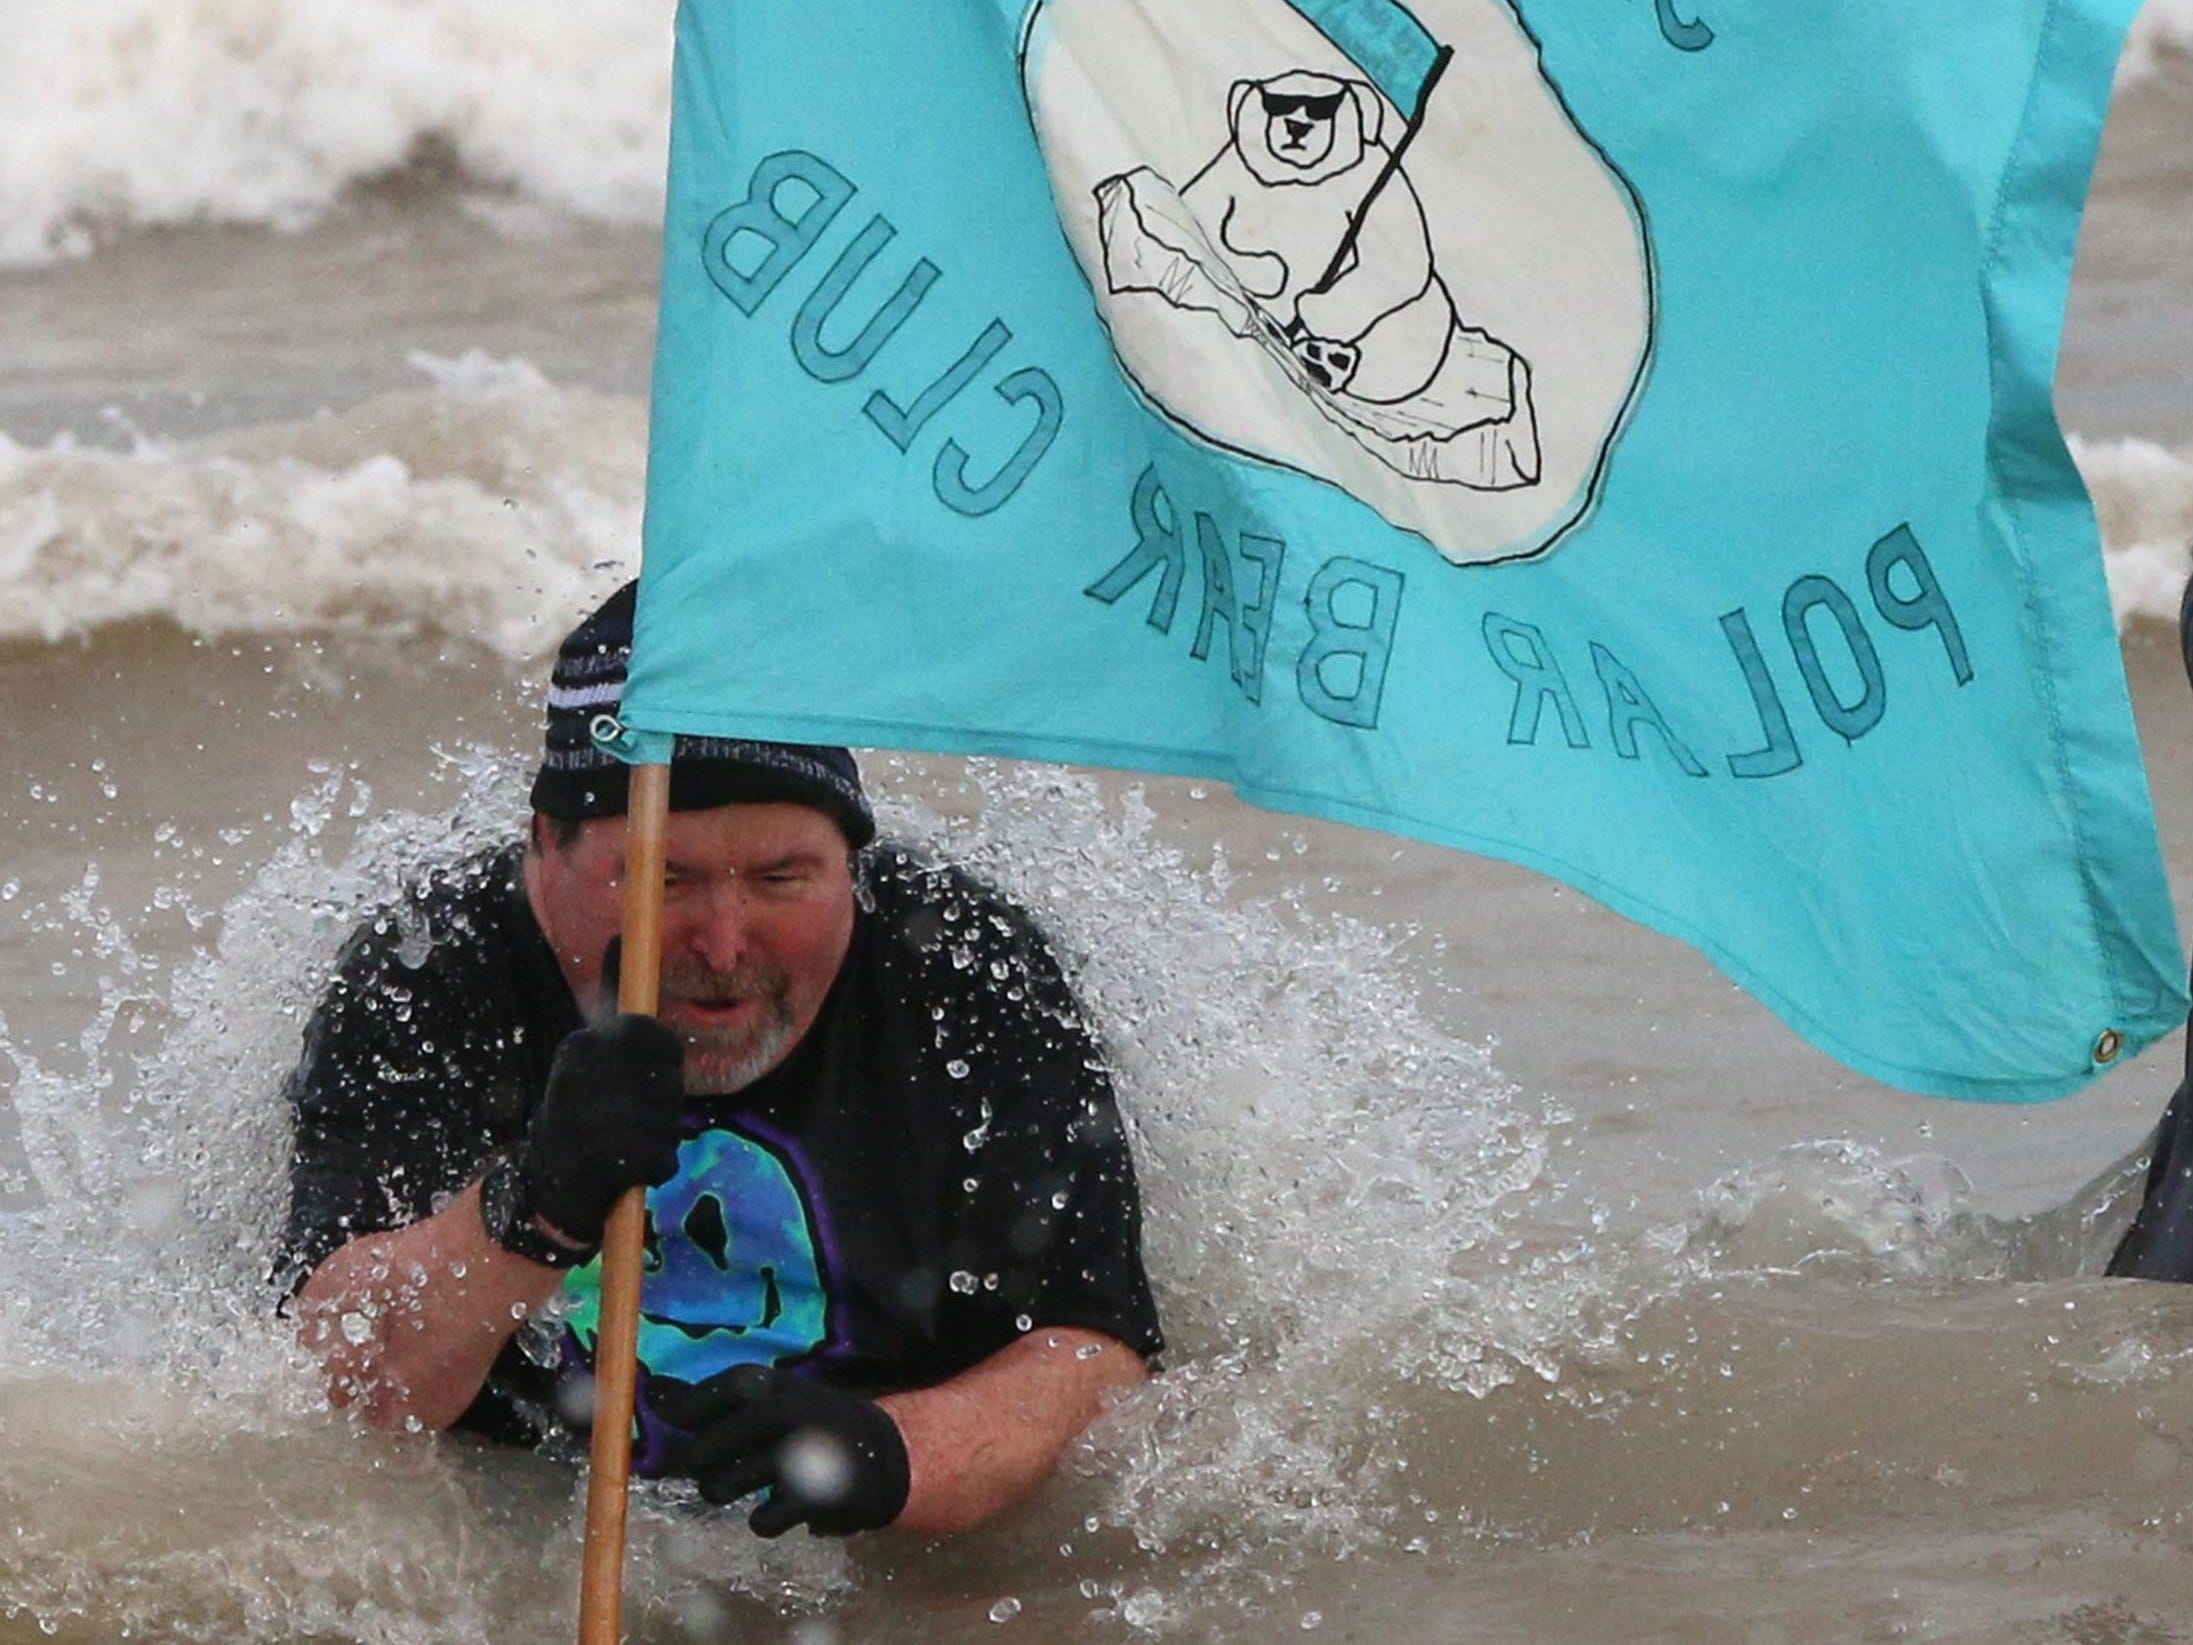 Larry Pratt crests a way while waving the Polar Bear Club banner, Tuesday, January 1, 2019, at Deland Park in Sheboygan, Wis. Pratt said this year was the 49th year of the event as it stretches back to 1971.  He has been doing the dip since 1981.